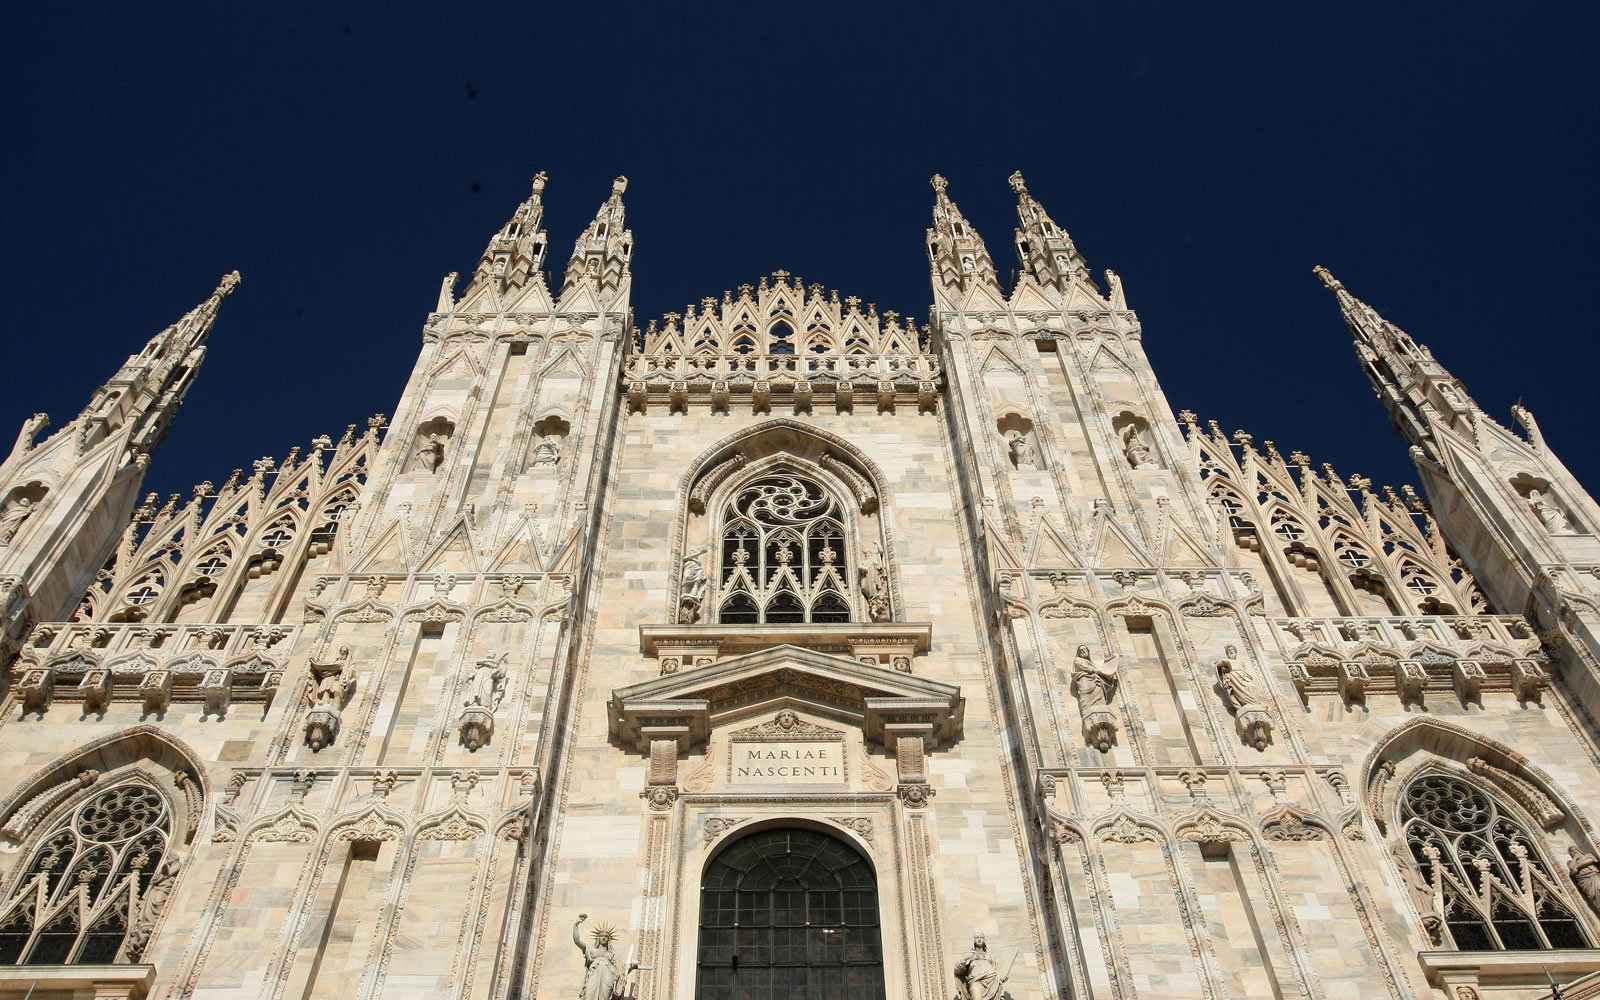 The Duomo in Milan, Italy.